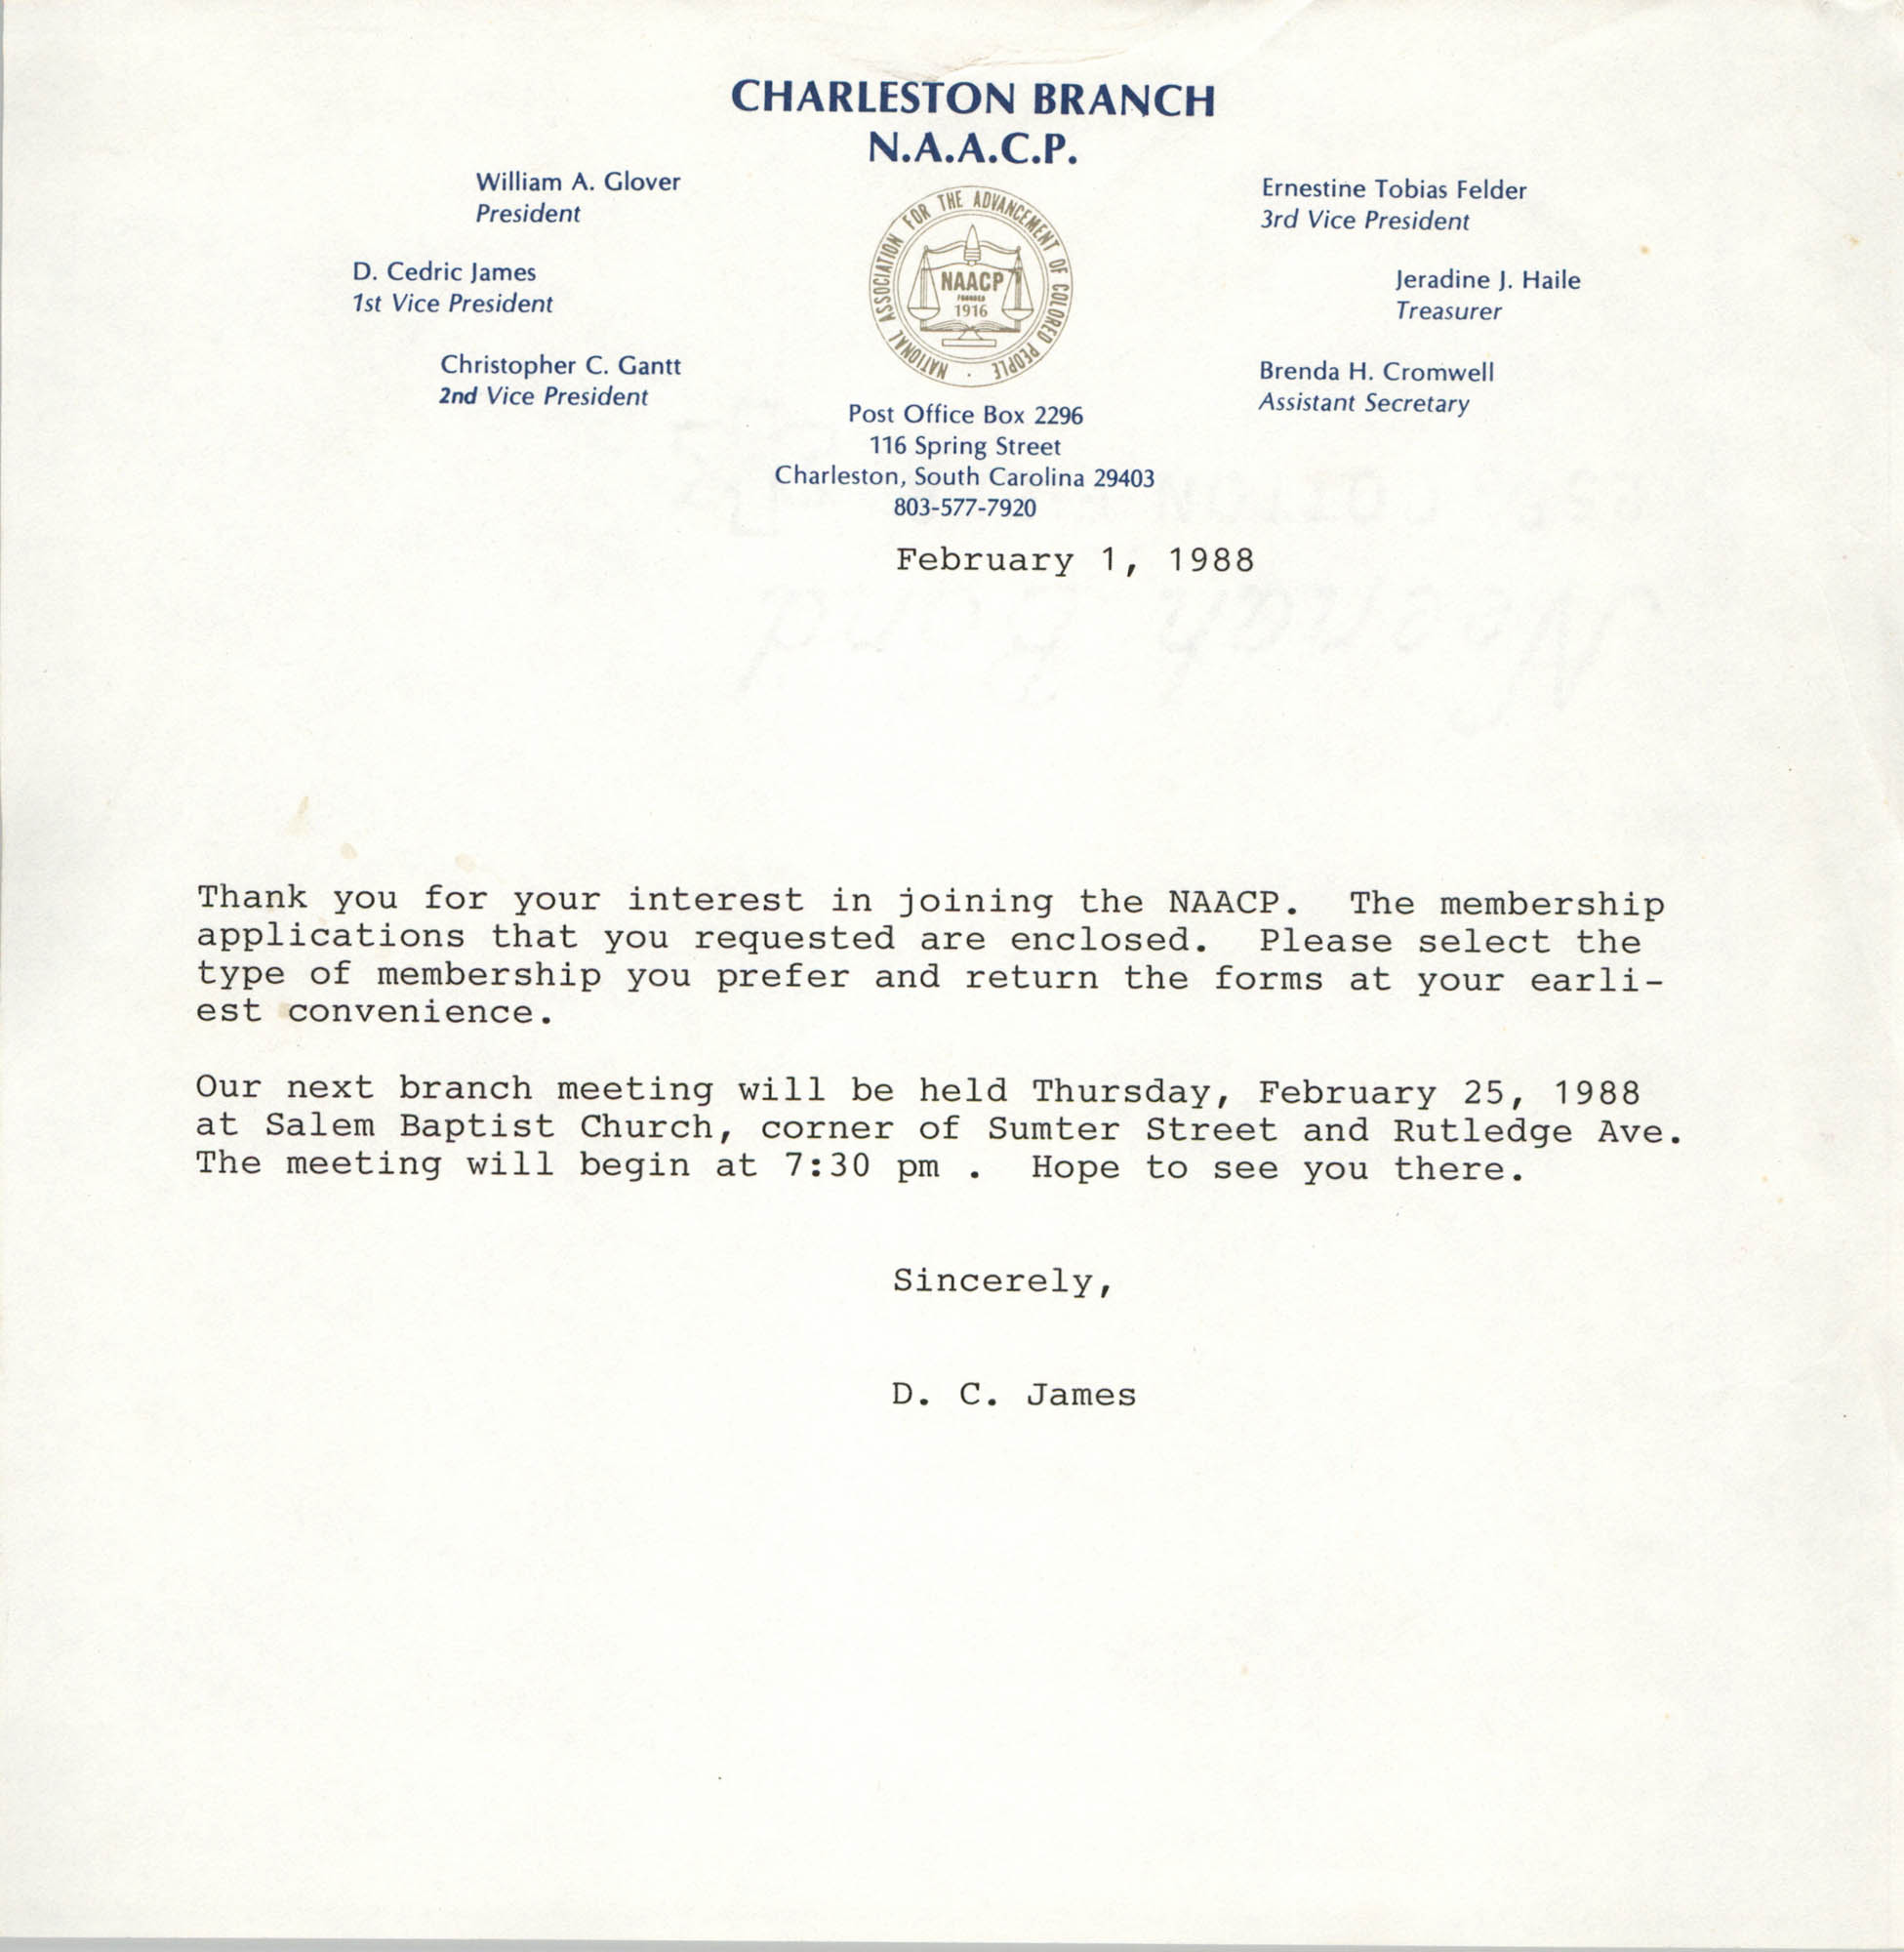 Letter from Dwight C. James, template, February 1, 1988